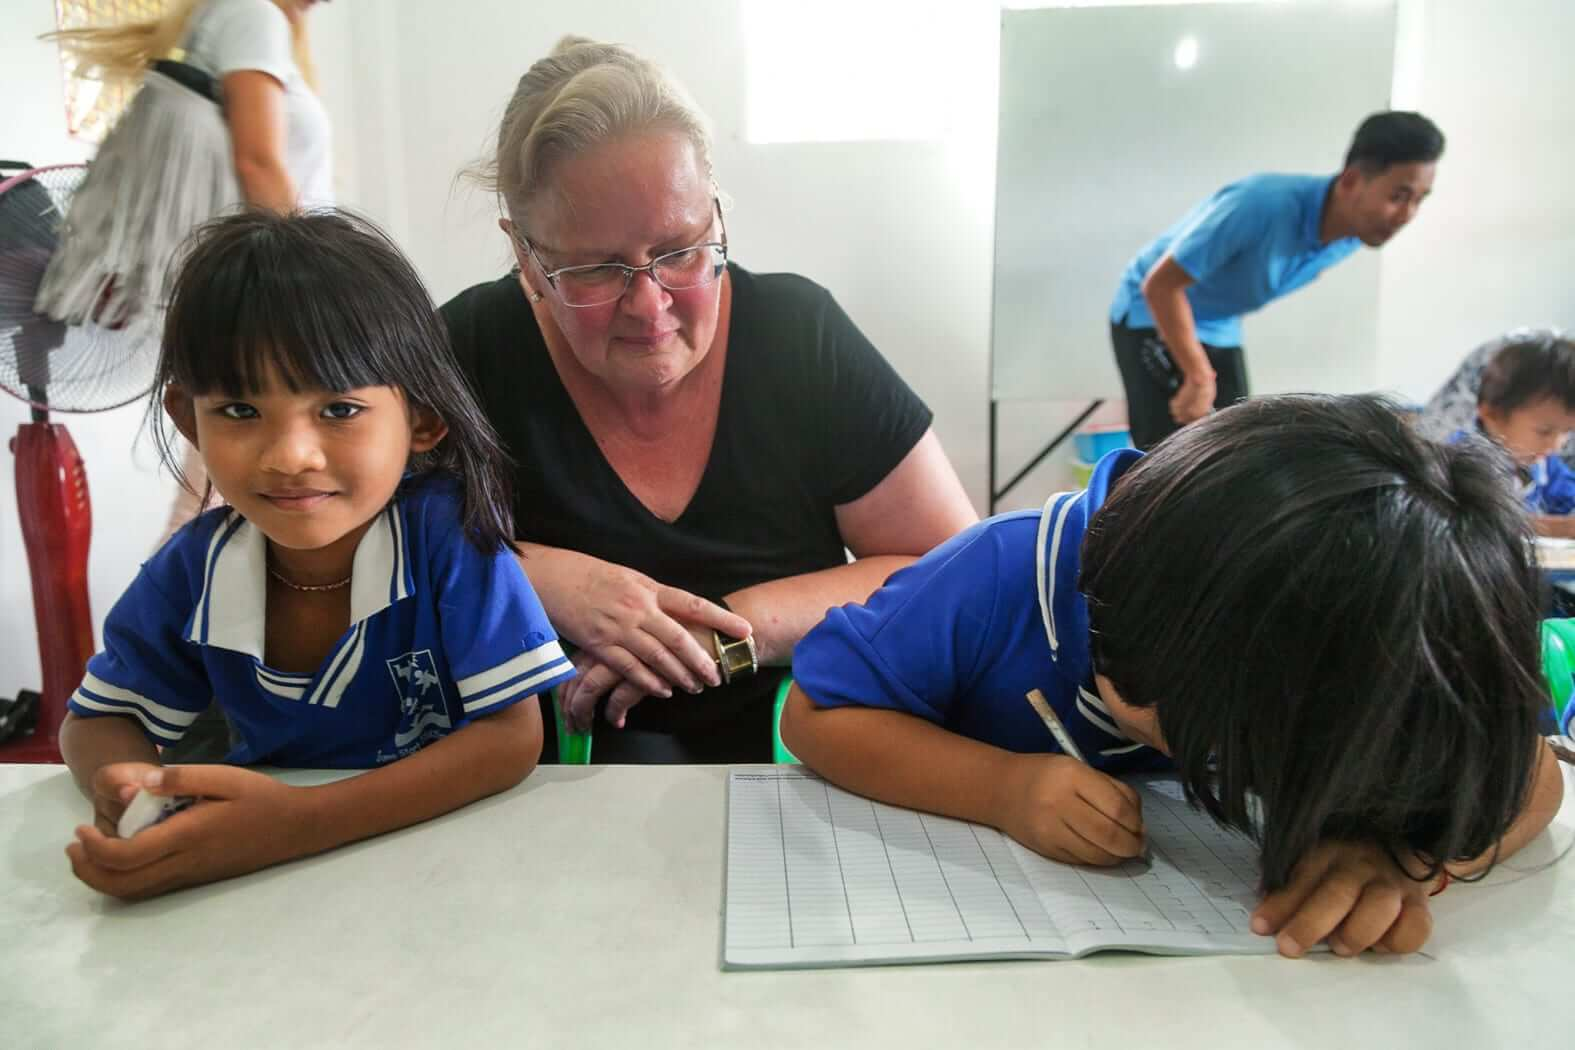 a woman is teaching two kids to write